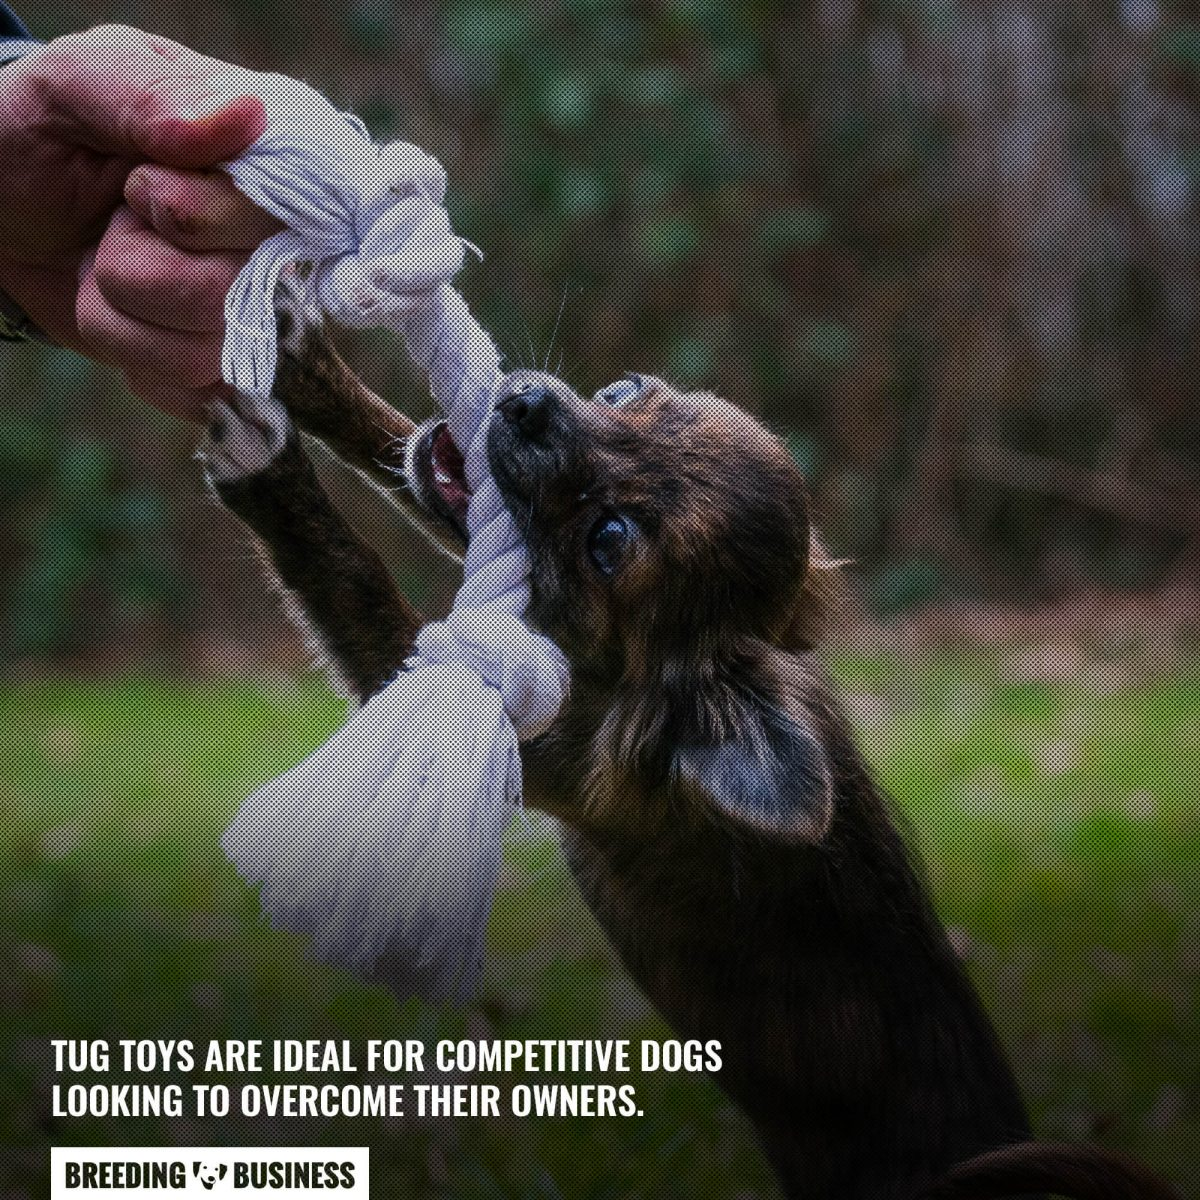 indestructible tug toys for dogs